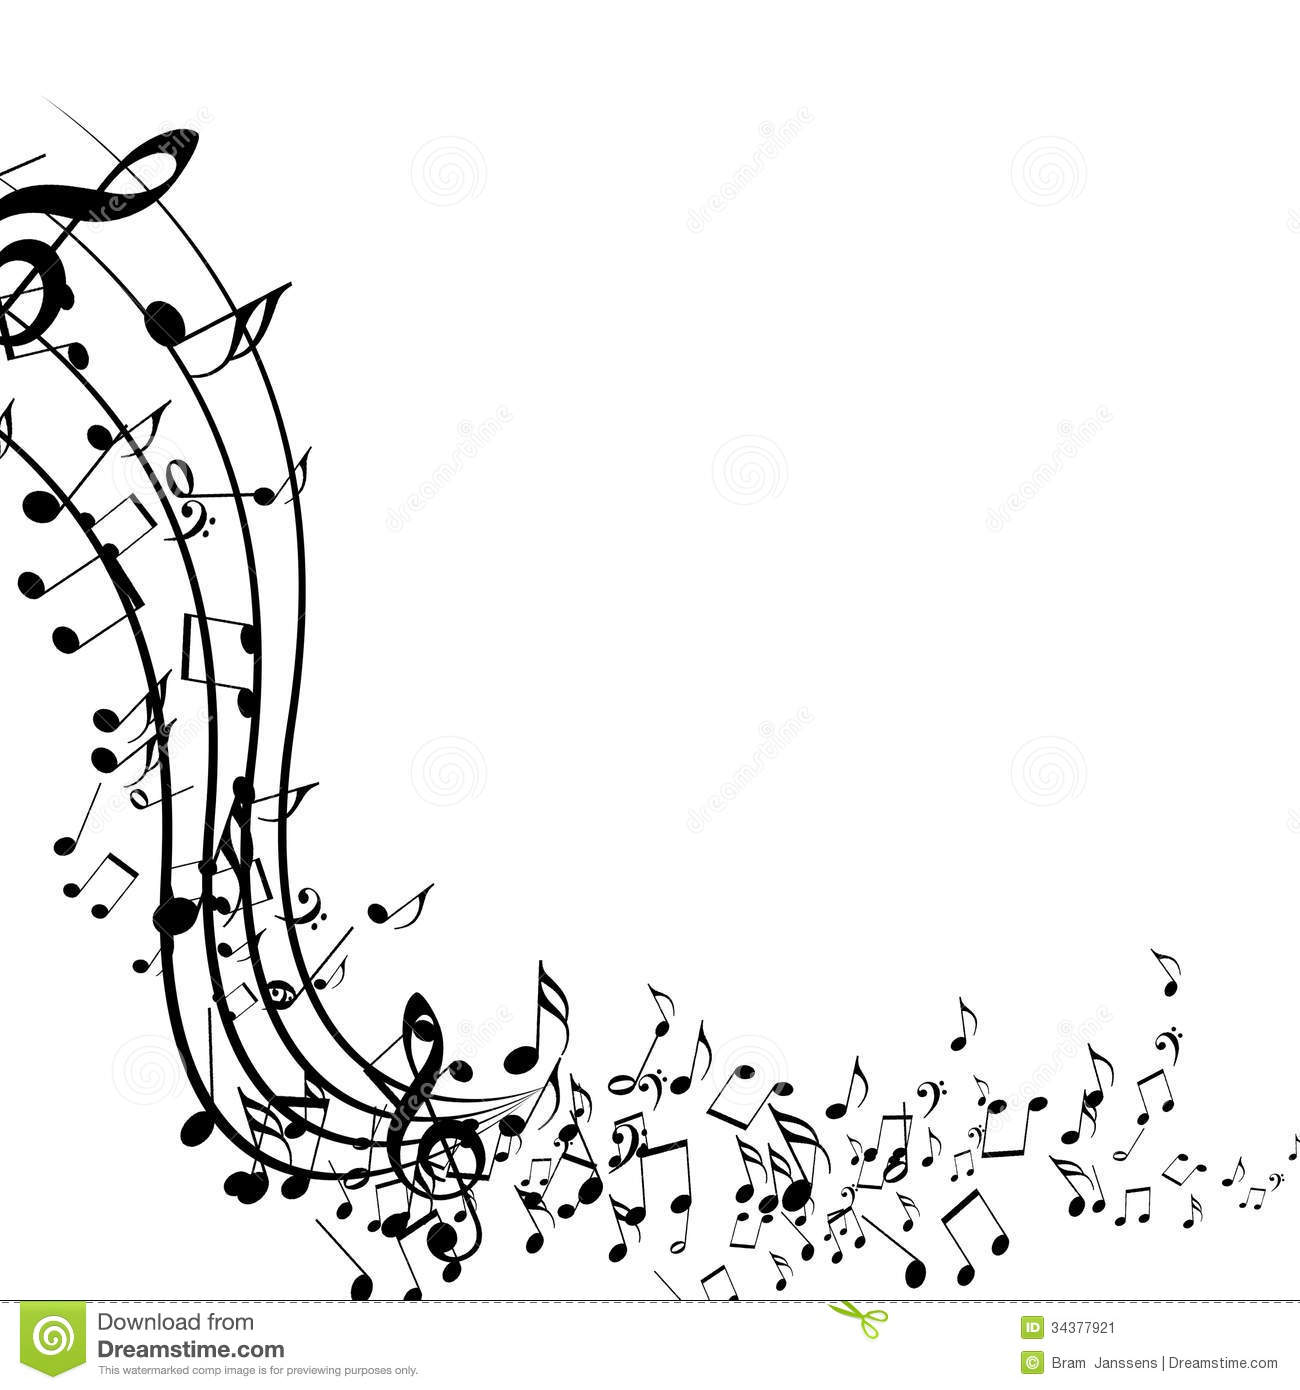 Black And White Music Notes Background Black music notes isolated on